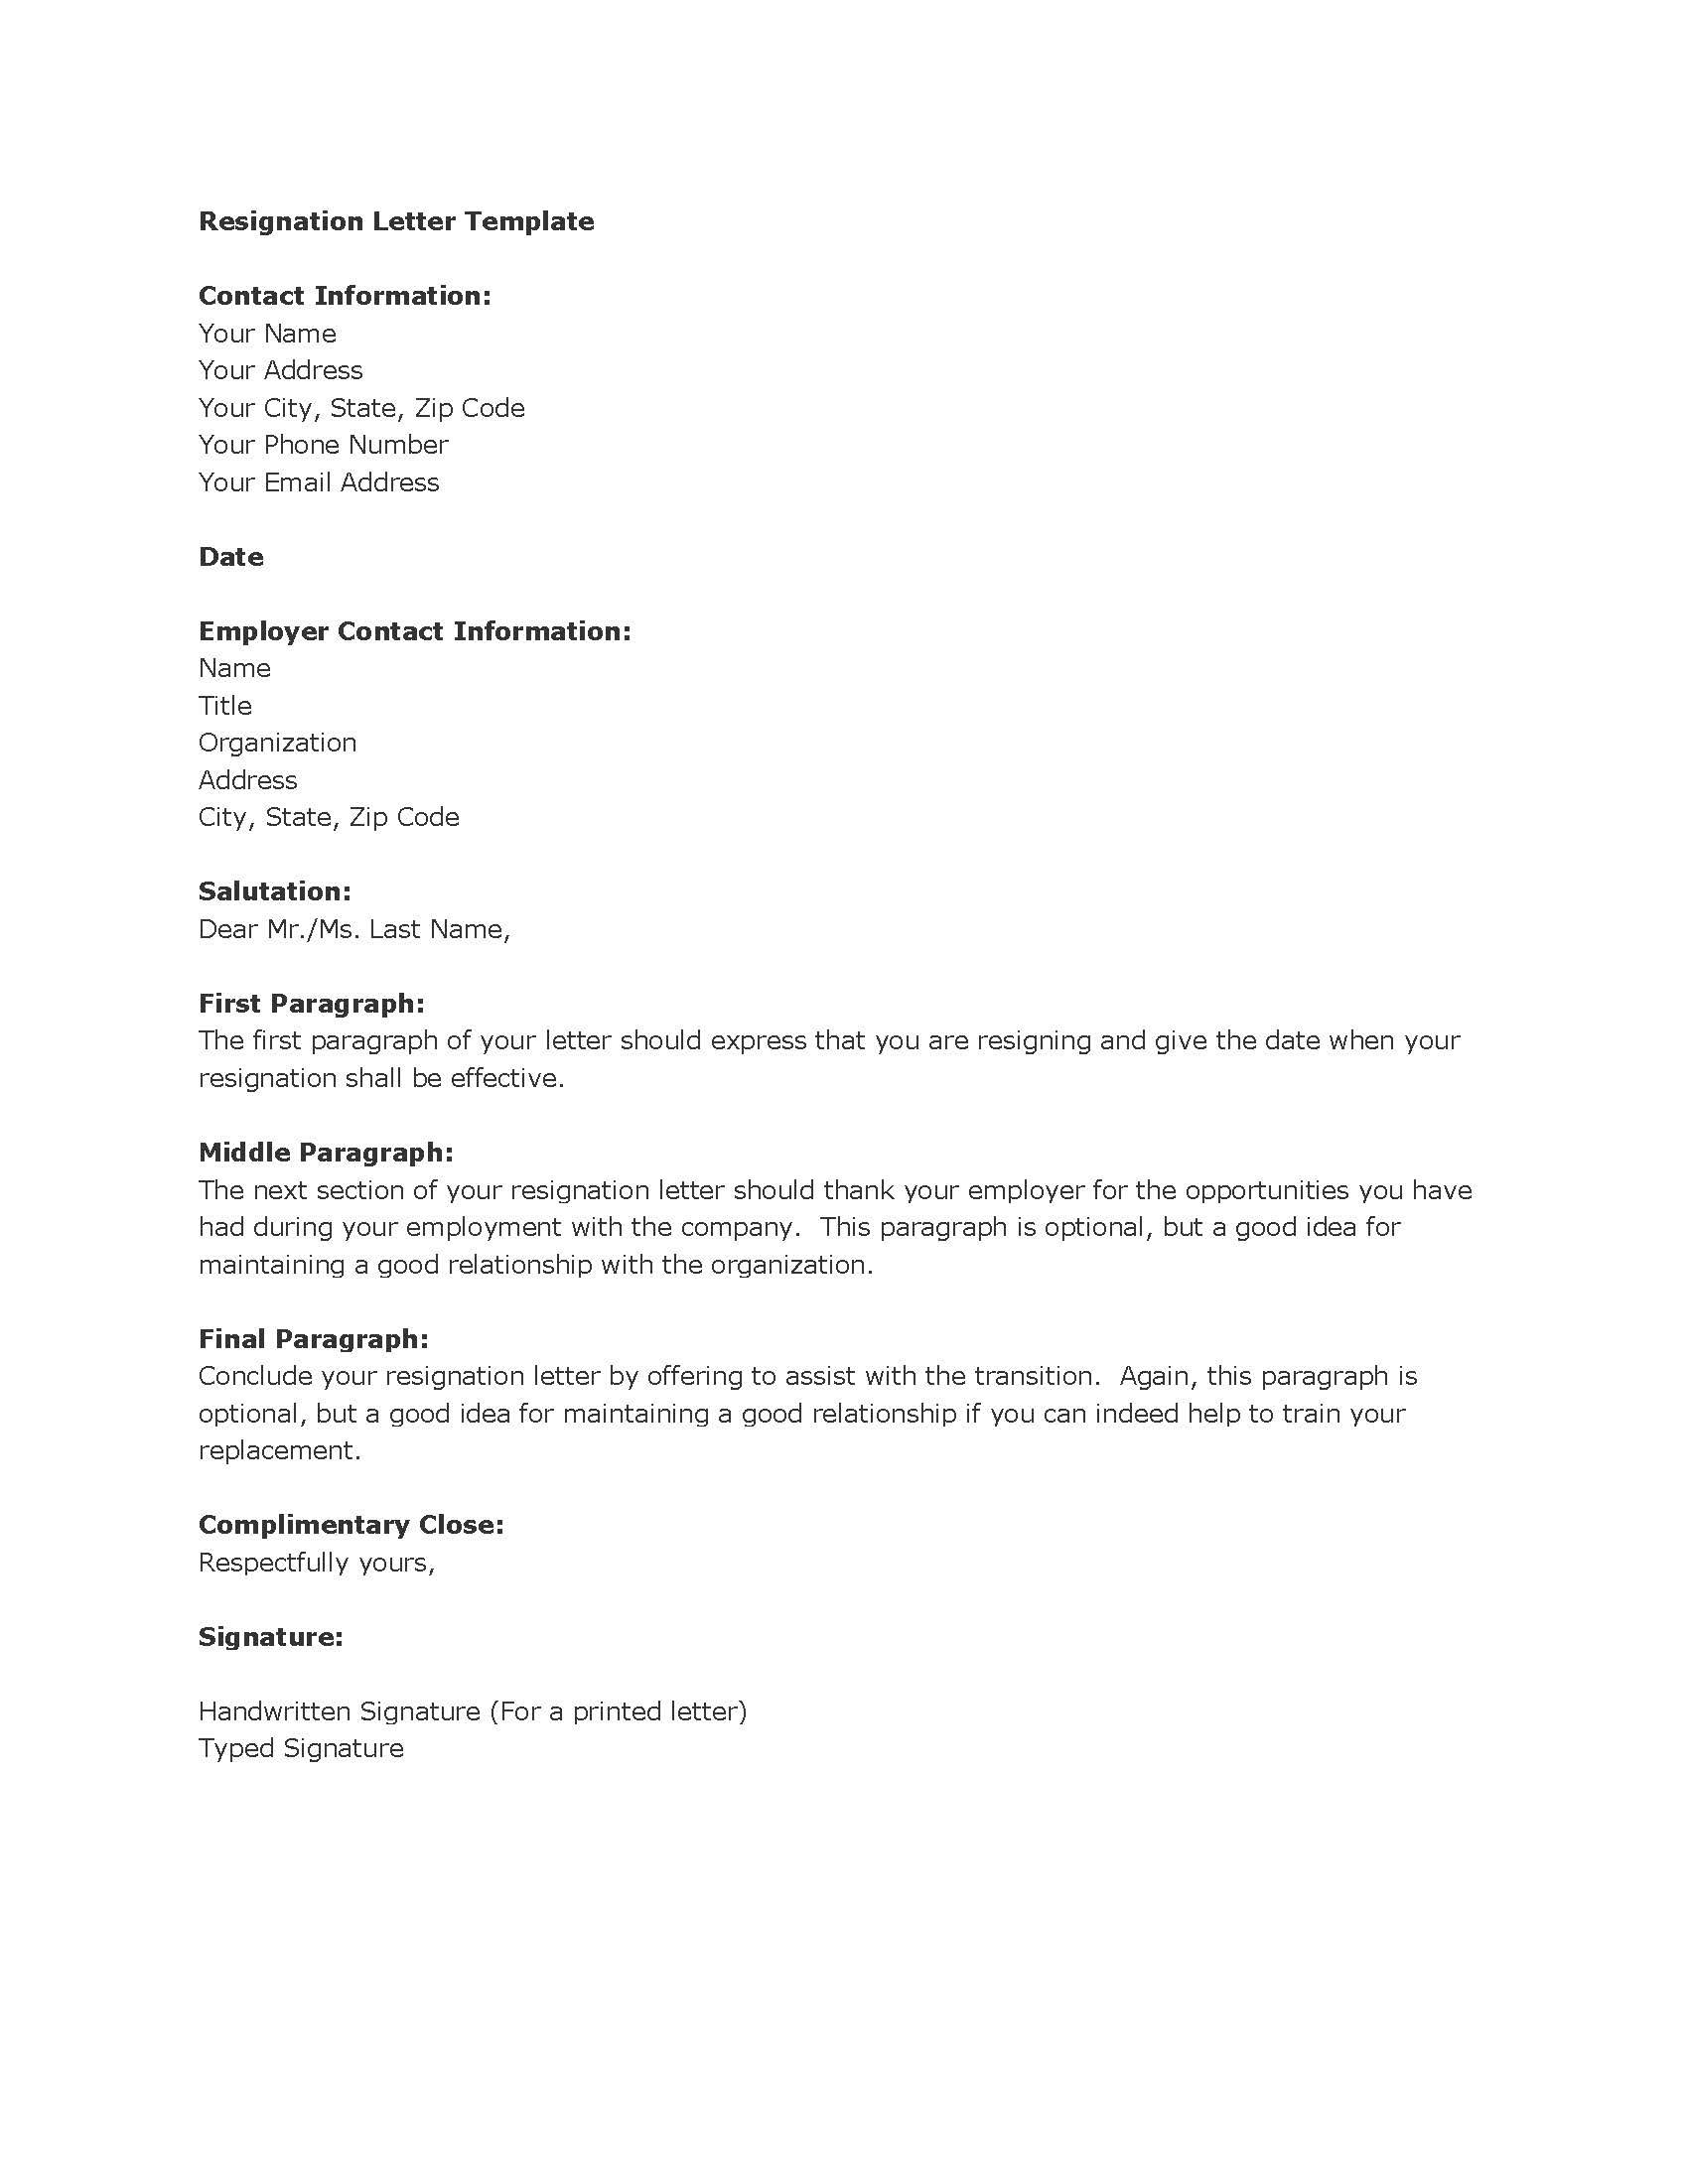 8f6109117eb2a430bb606f90432ba1ea Job Application Form For Interior Design on part time, blank generic, free generic,